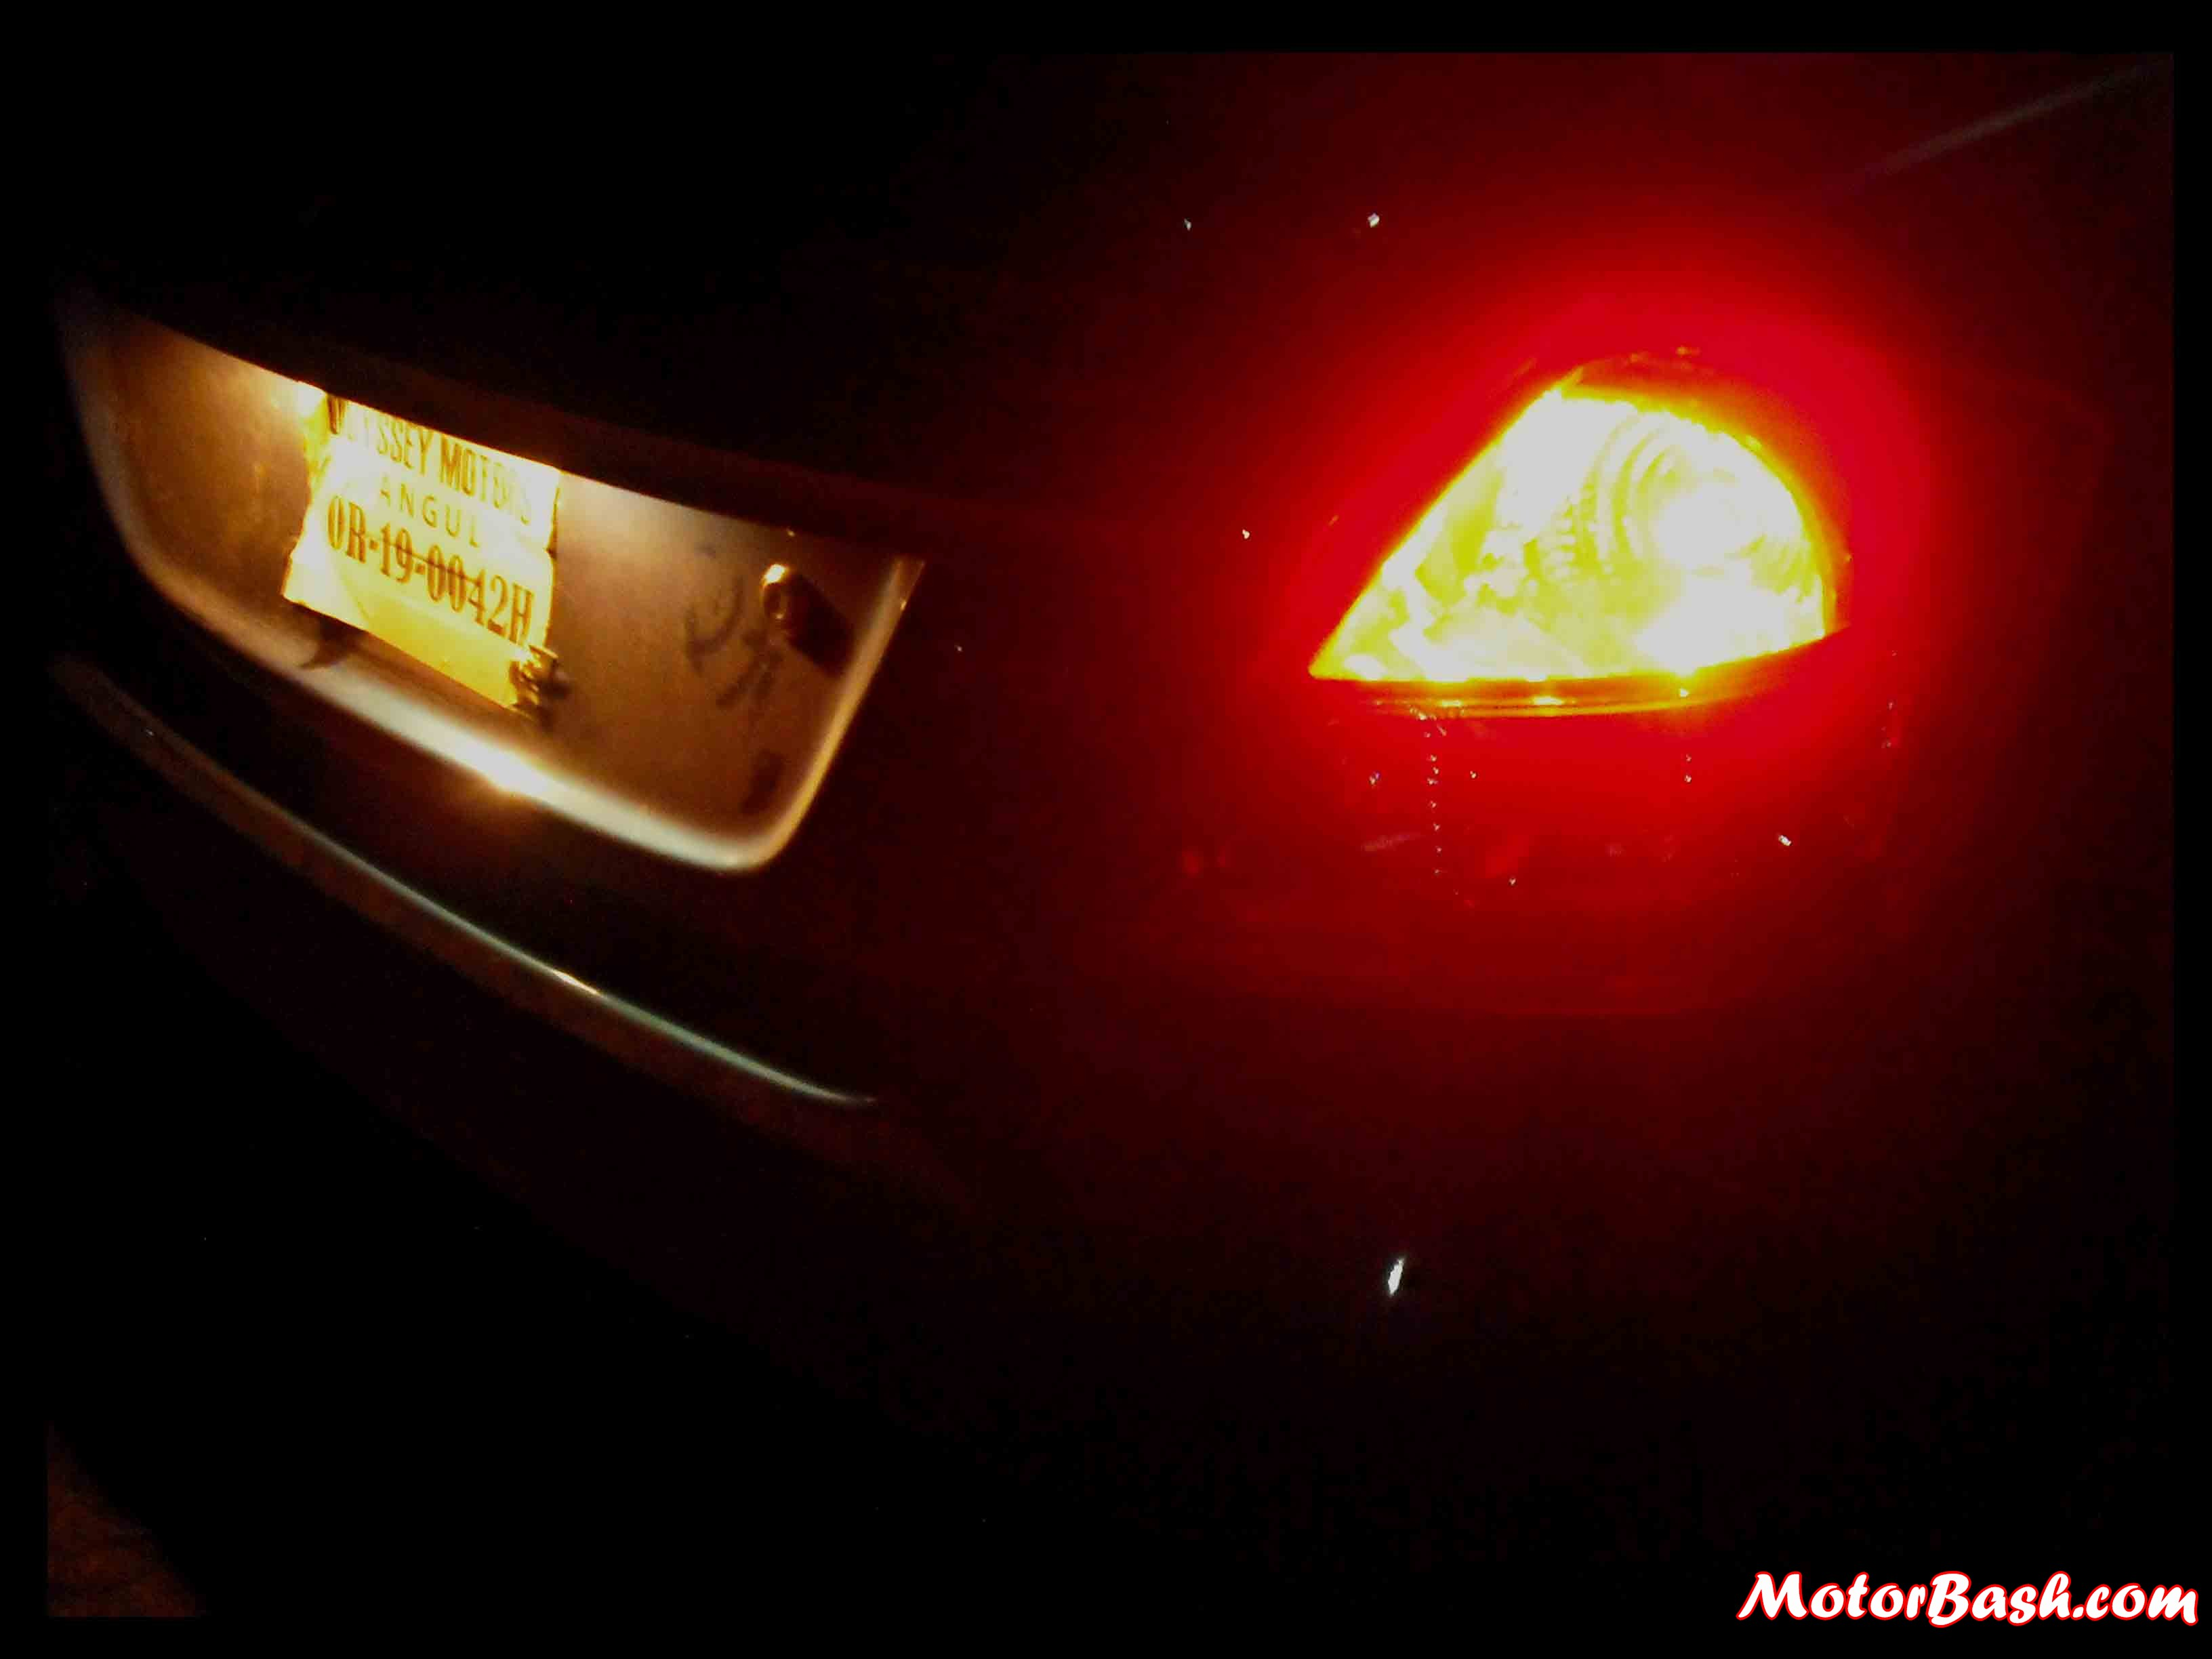 Rear lamps are bright and look good at night.